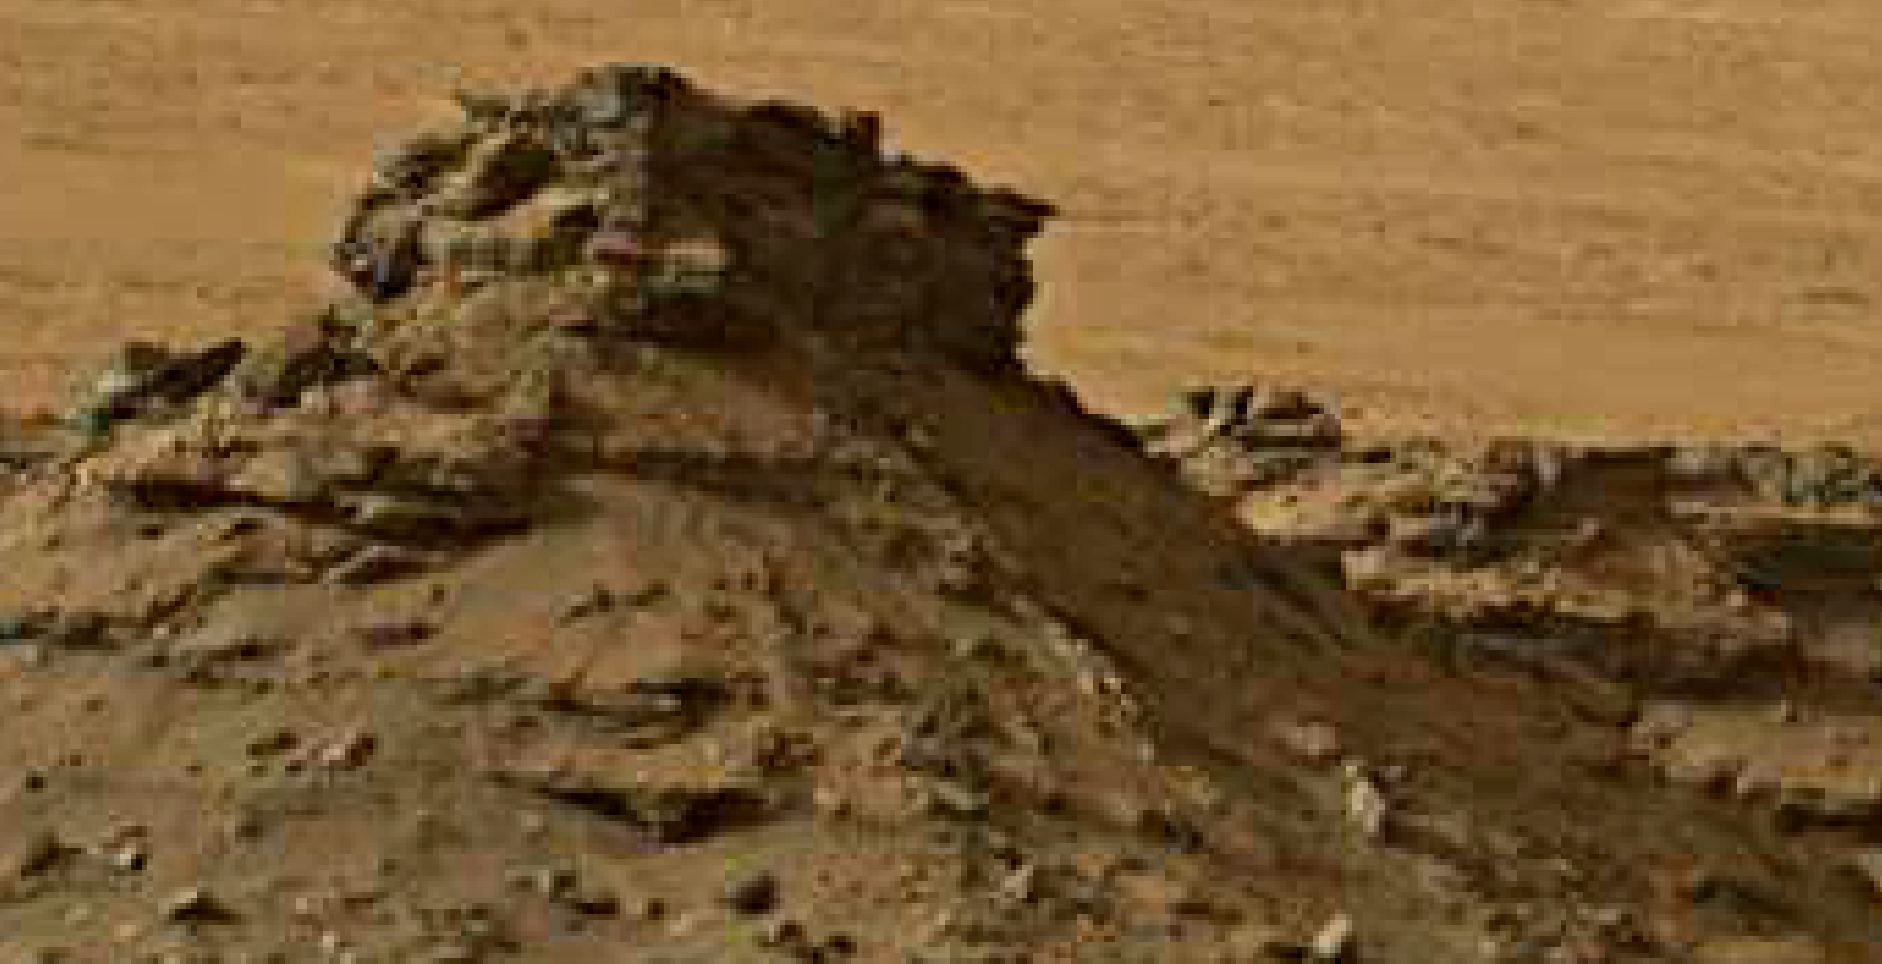 mars sol 1447 anomaly artifacts 2 -bird-plane-butte - was life on mars